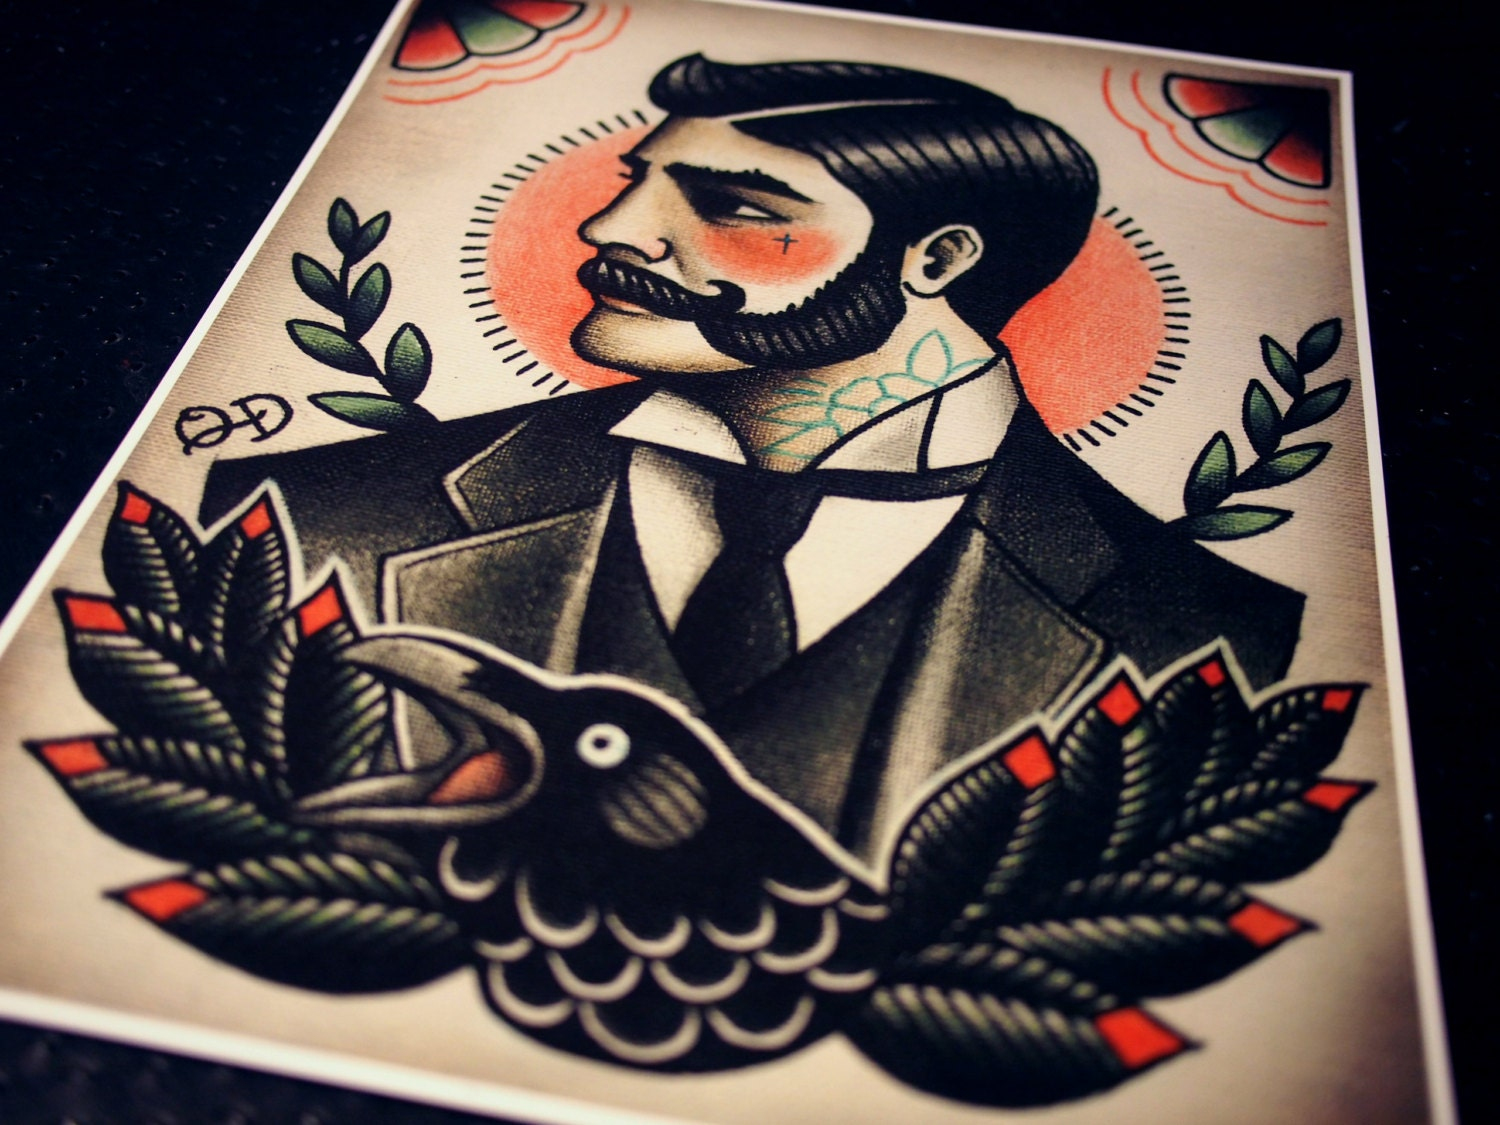 Victorian Gentleman Tattoo